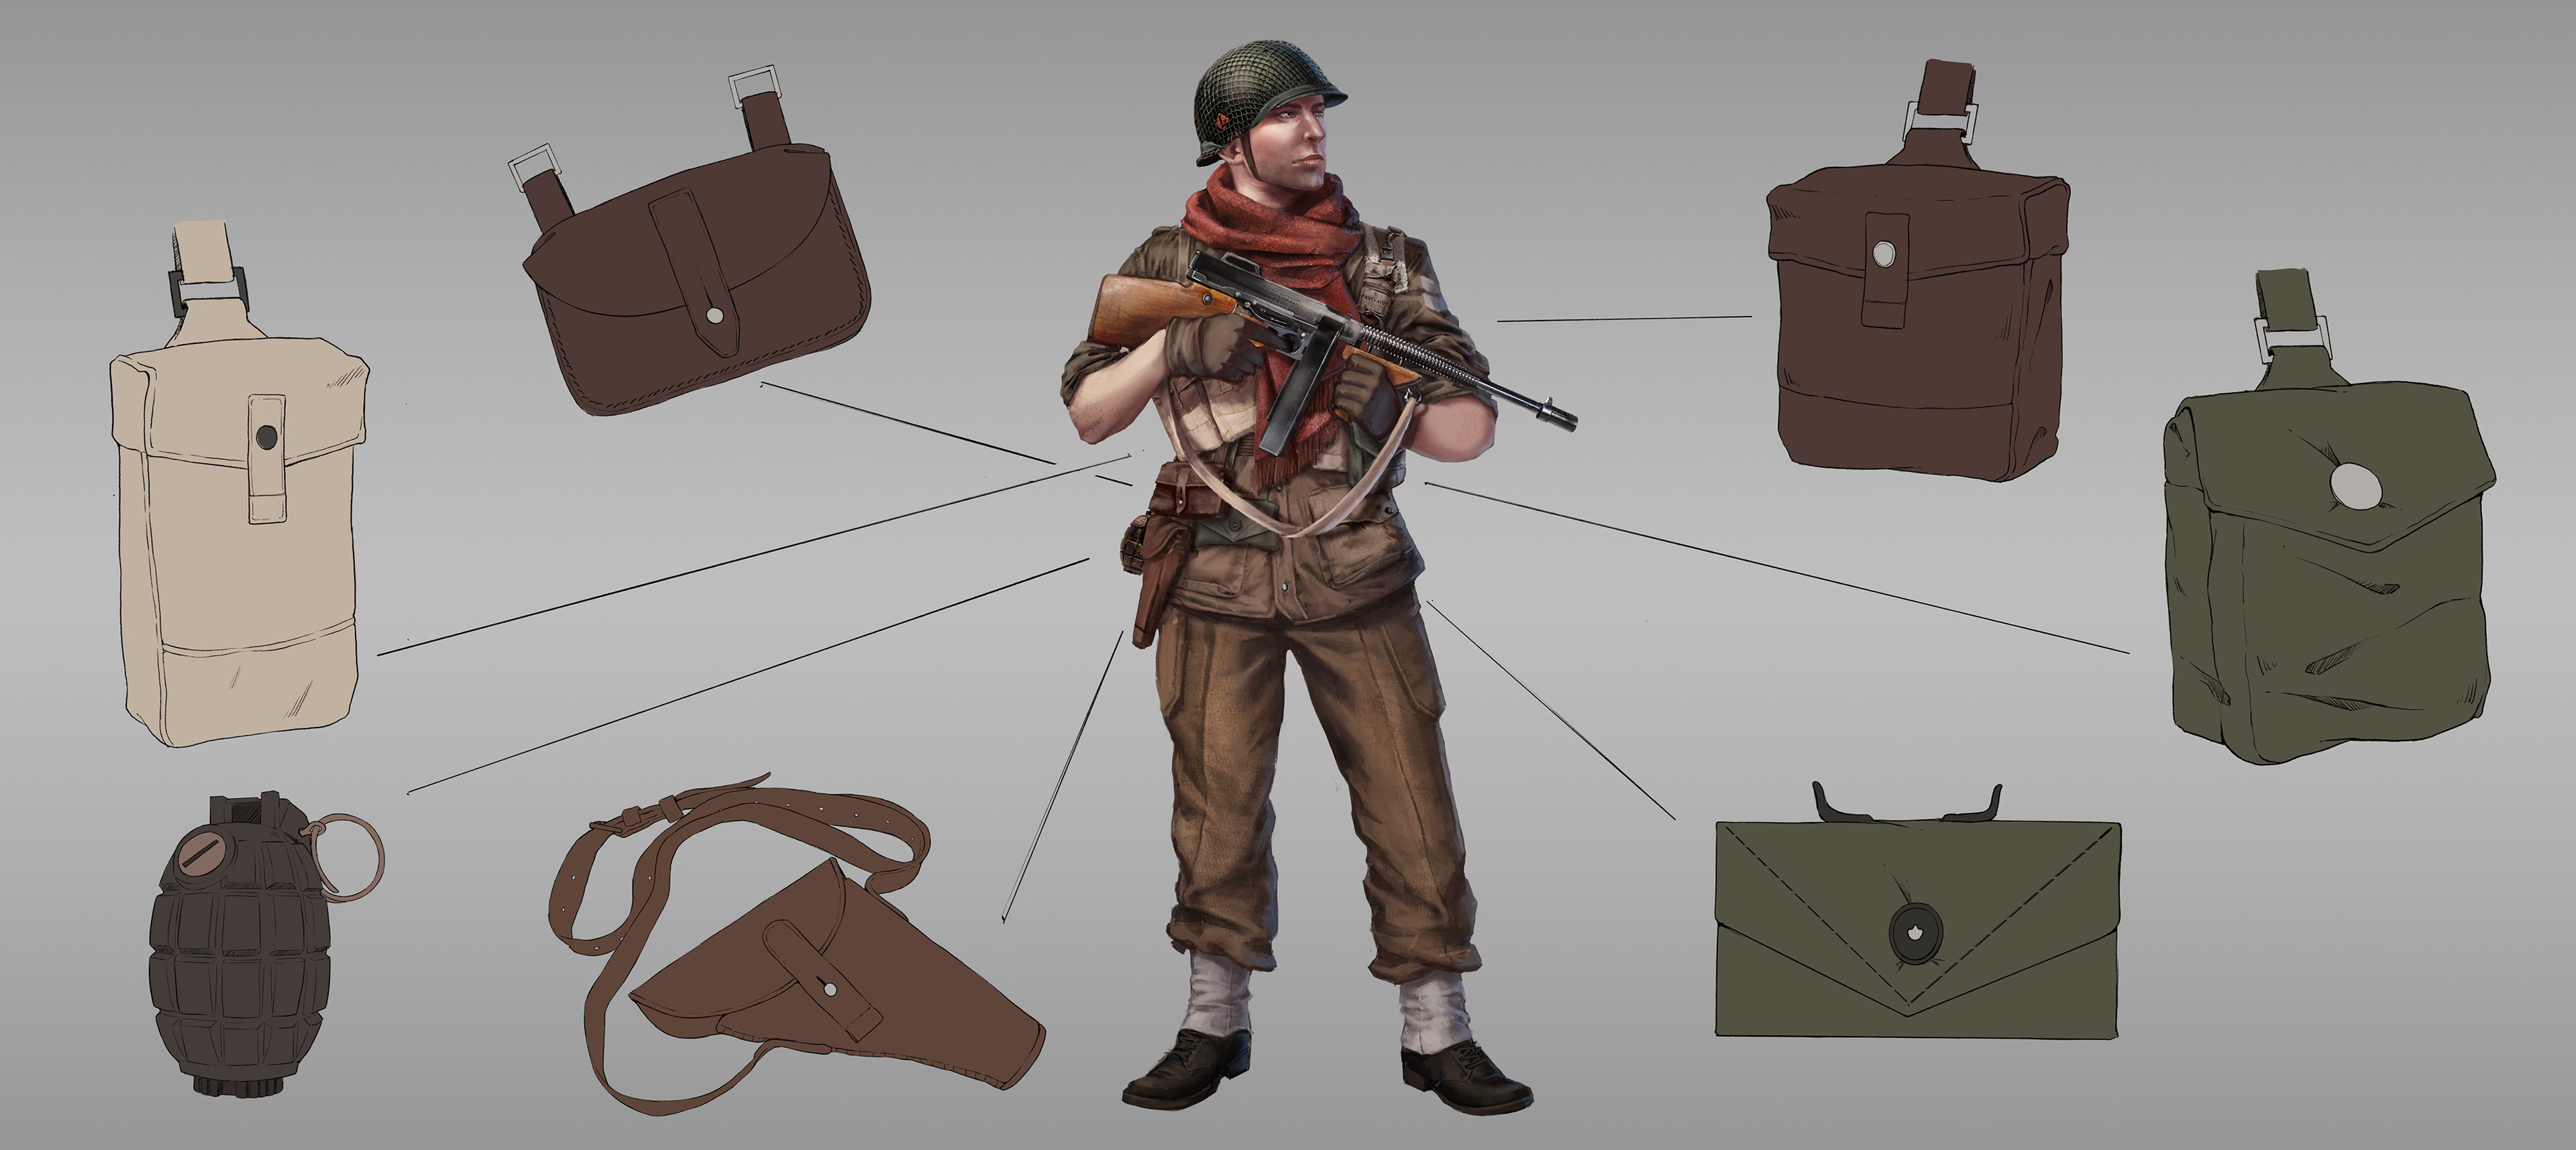 Britian details design breakdown. This one got to be full on offensive! I wanted to give him more offensive tools such as grenades and many ammo bags, and a smaller gun as back up och for close range.